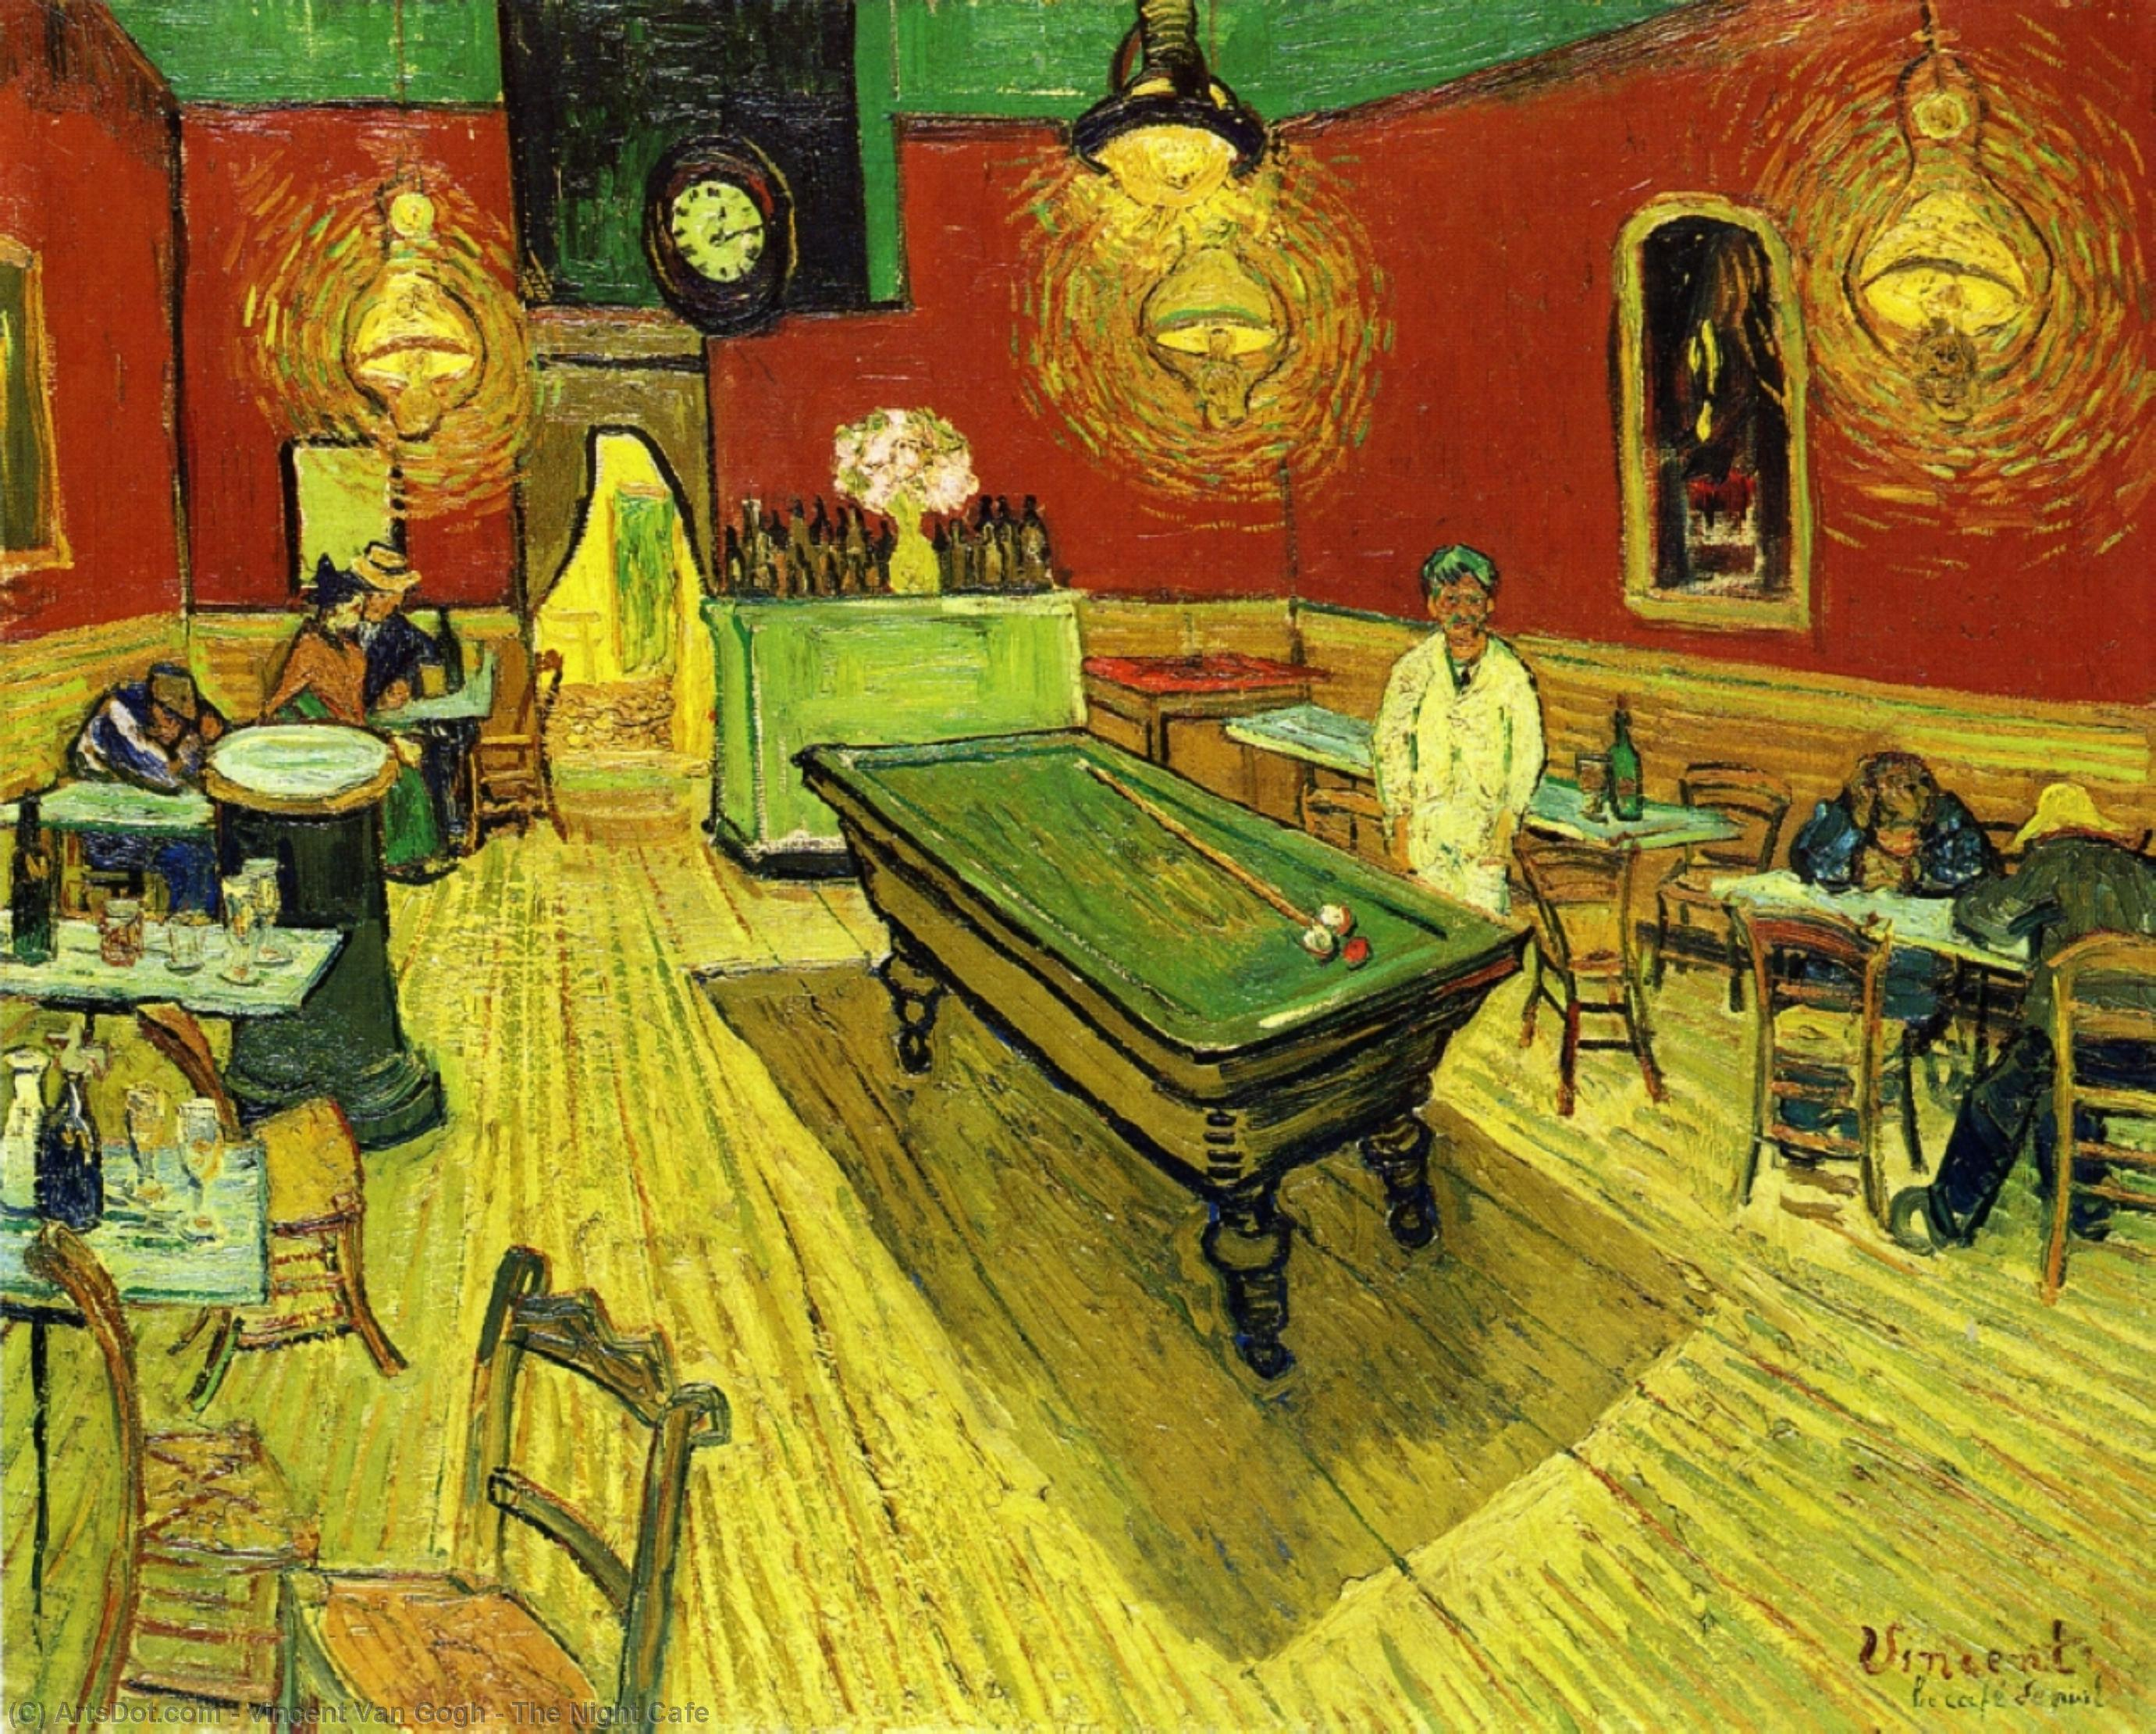 Wikioo.org - The Encyclopedia of Fine Arts - Painting, Artwork by Vincent Van Gogh - The Night Cafe